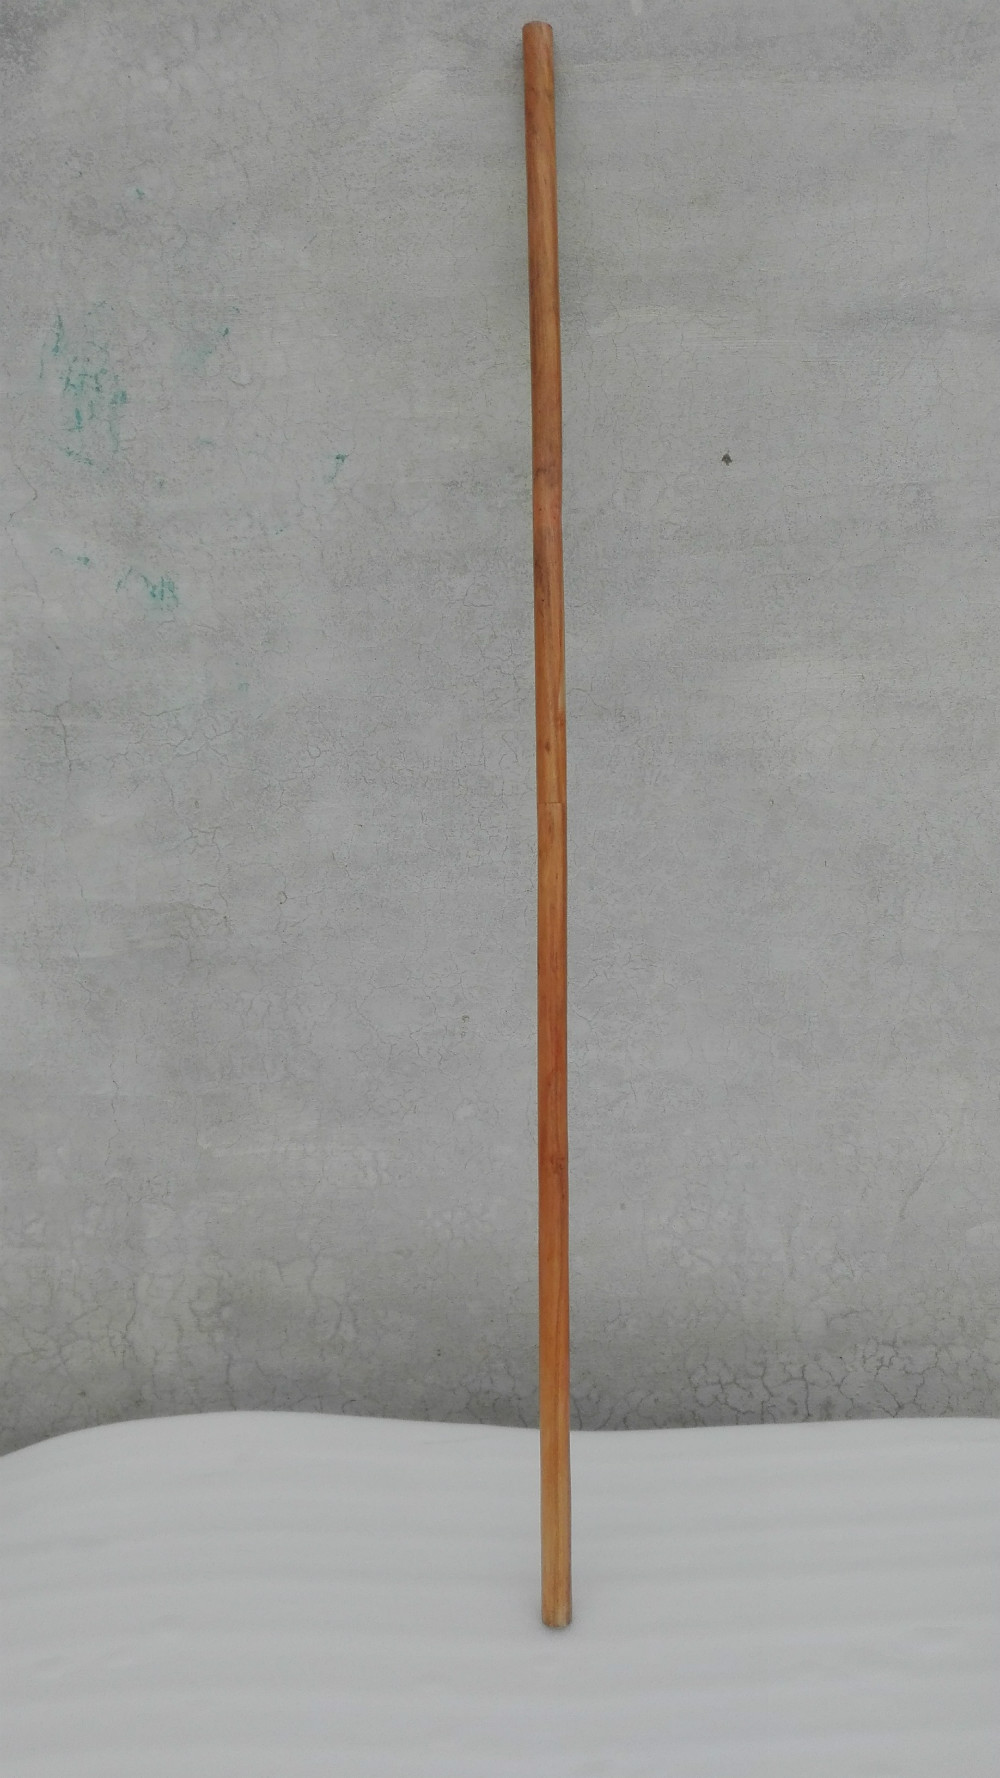 60 Wooden Bo Straight Staff Martial Arts Karate Practice Two Parts Staff Buy Joint Wooden Bo Staff Product On Alibabacom